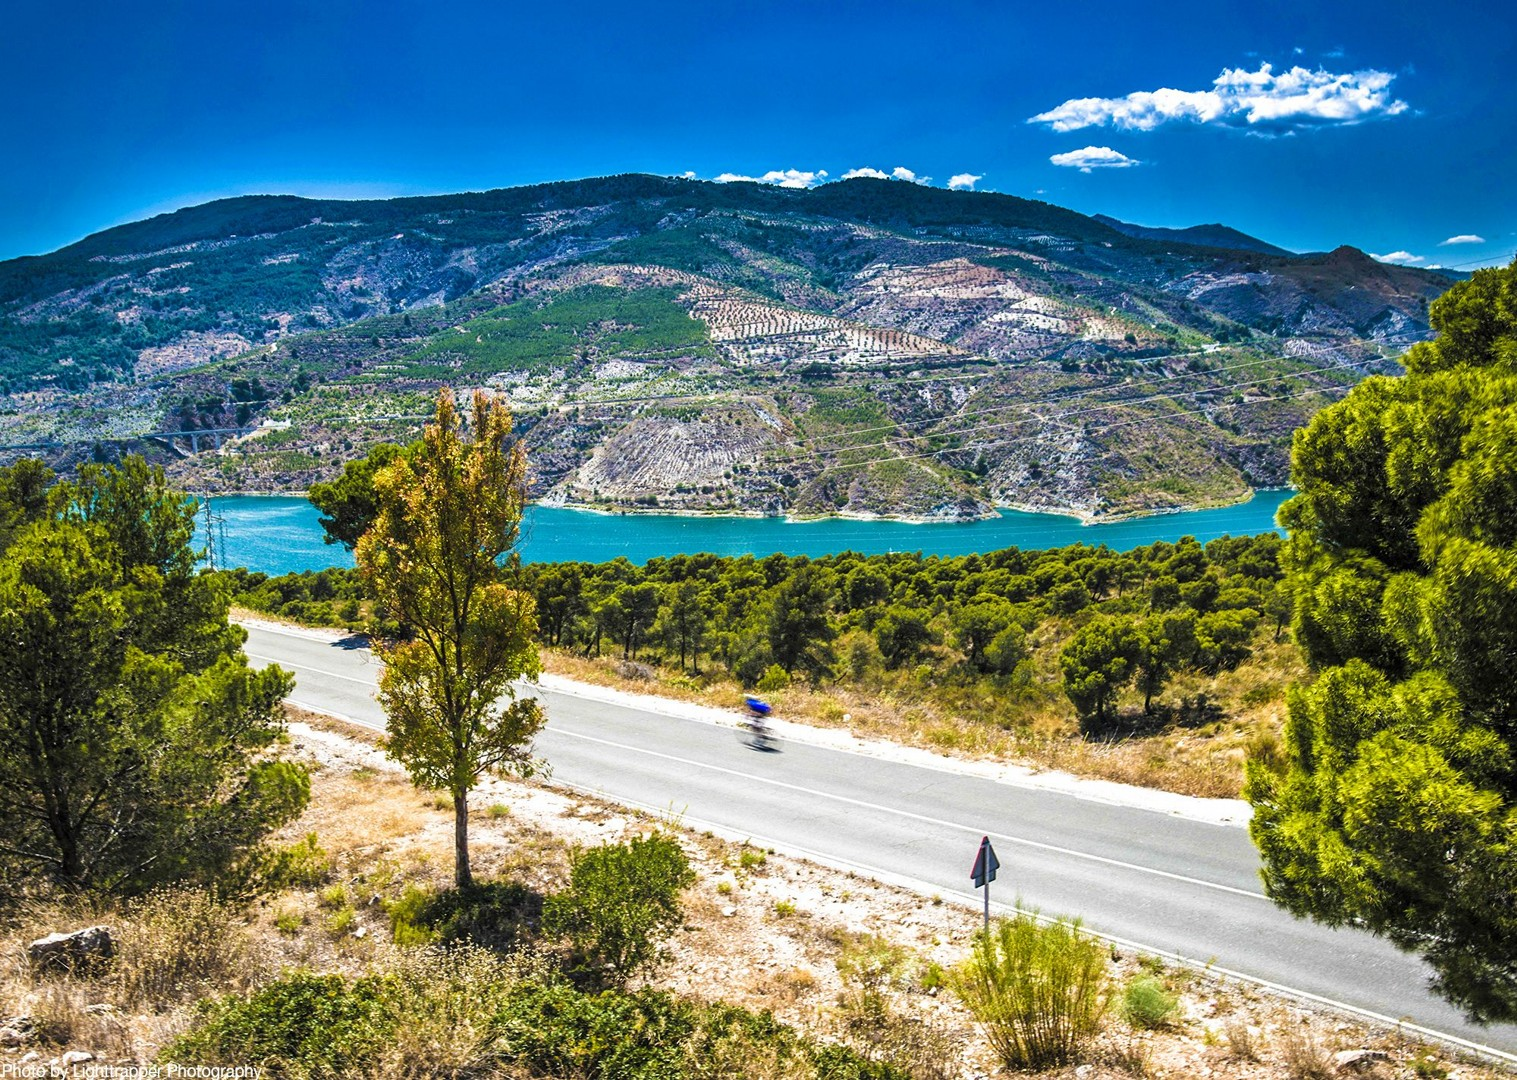 stunning-limestone-mountains-andalucia-road-cycling.jpg - Southern Spain - Roads of Ronda - Guided Road Cycling Holiday - Road Cycling